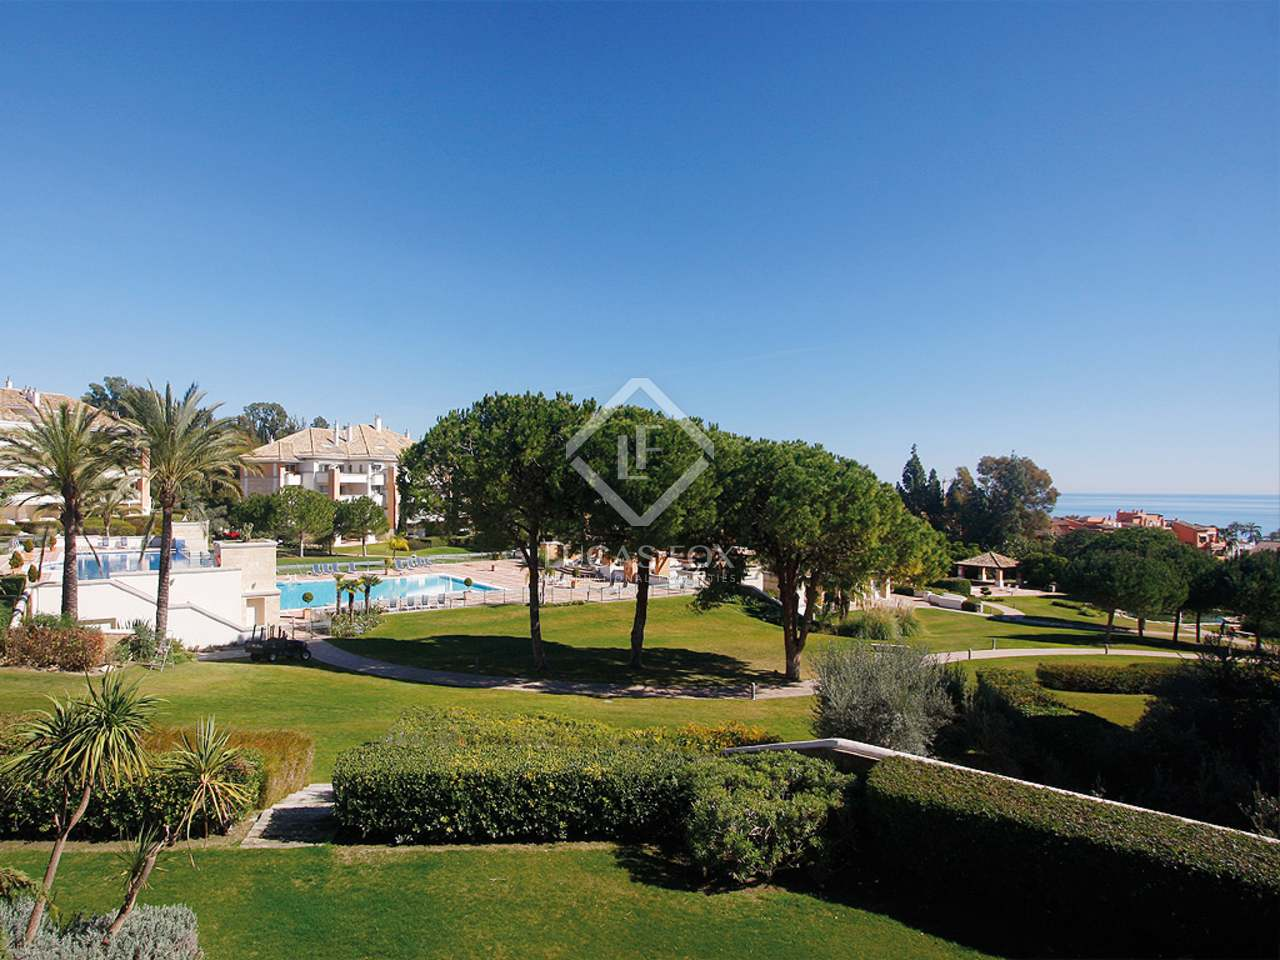 3 Bed Apartment for sale, La Trinidad, Golden Mile, Marbella